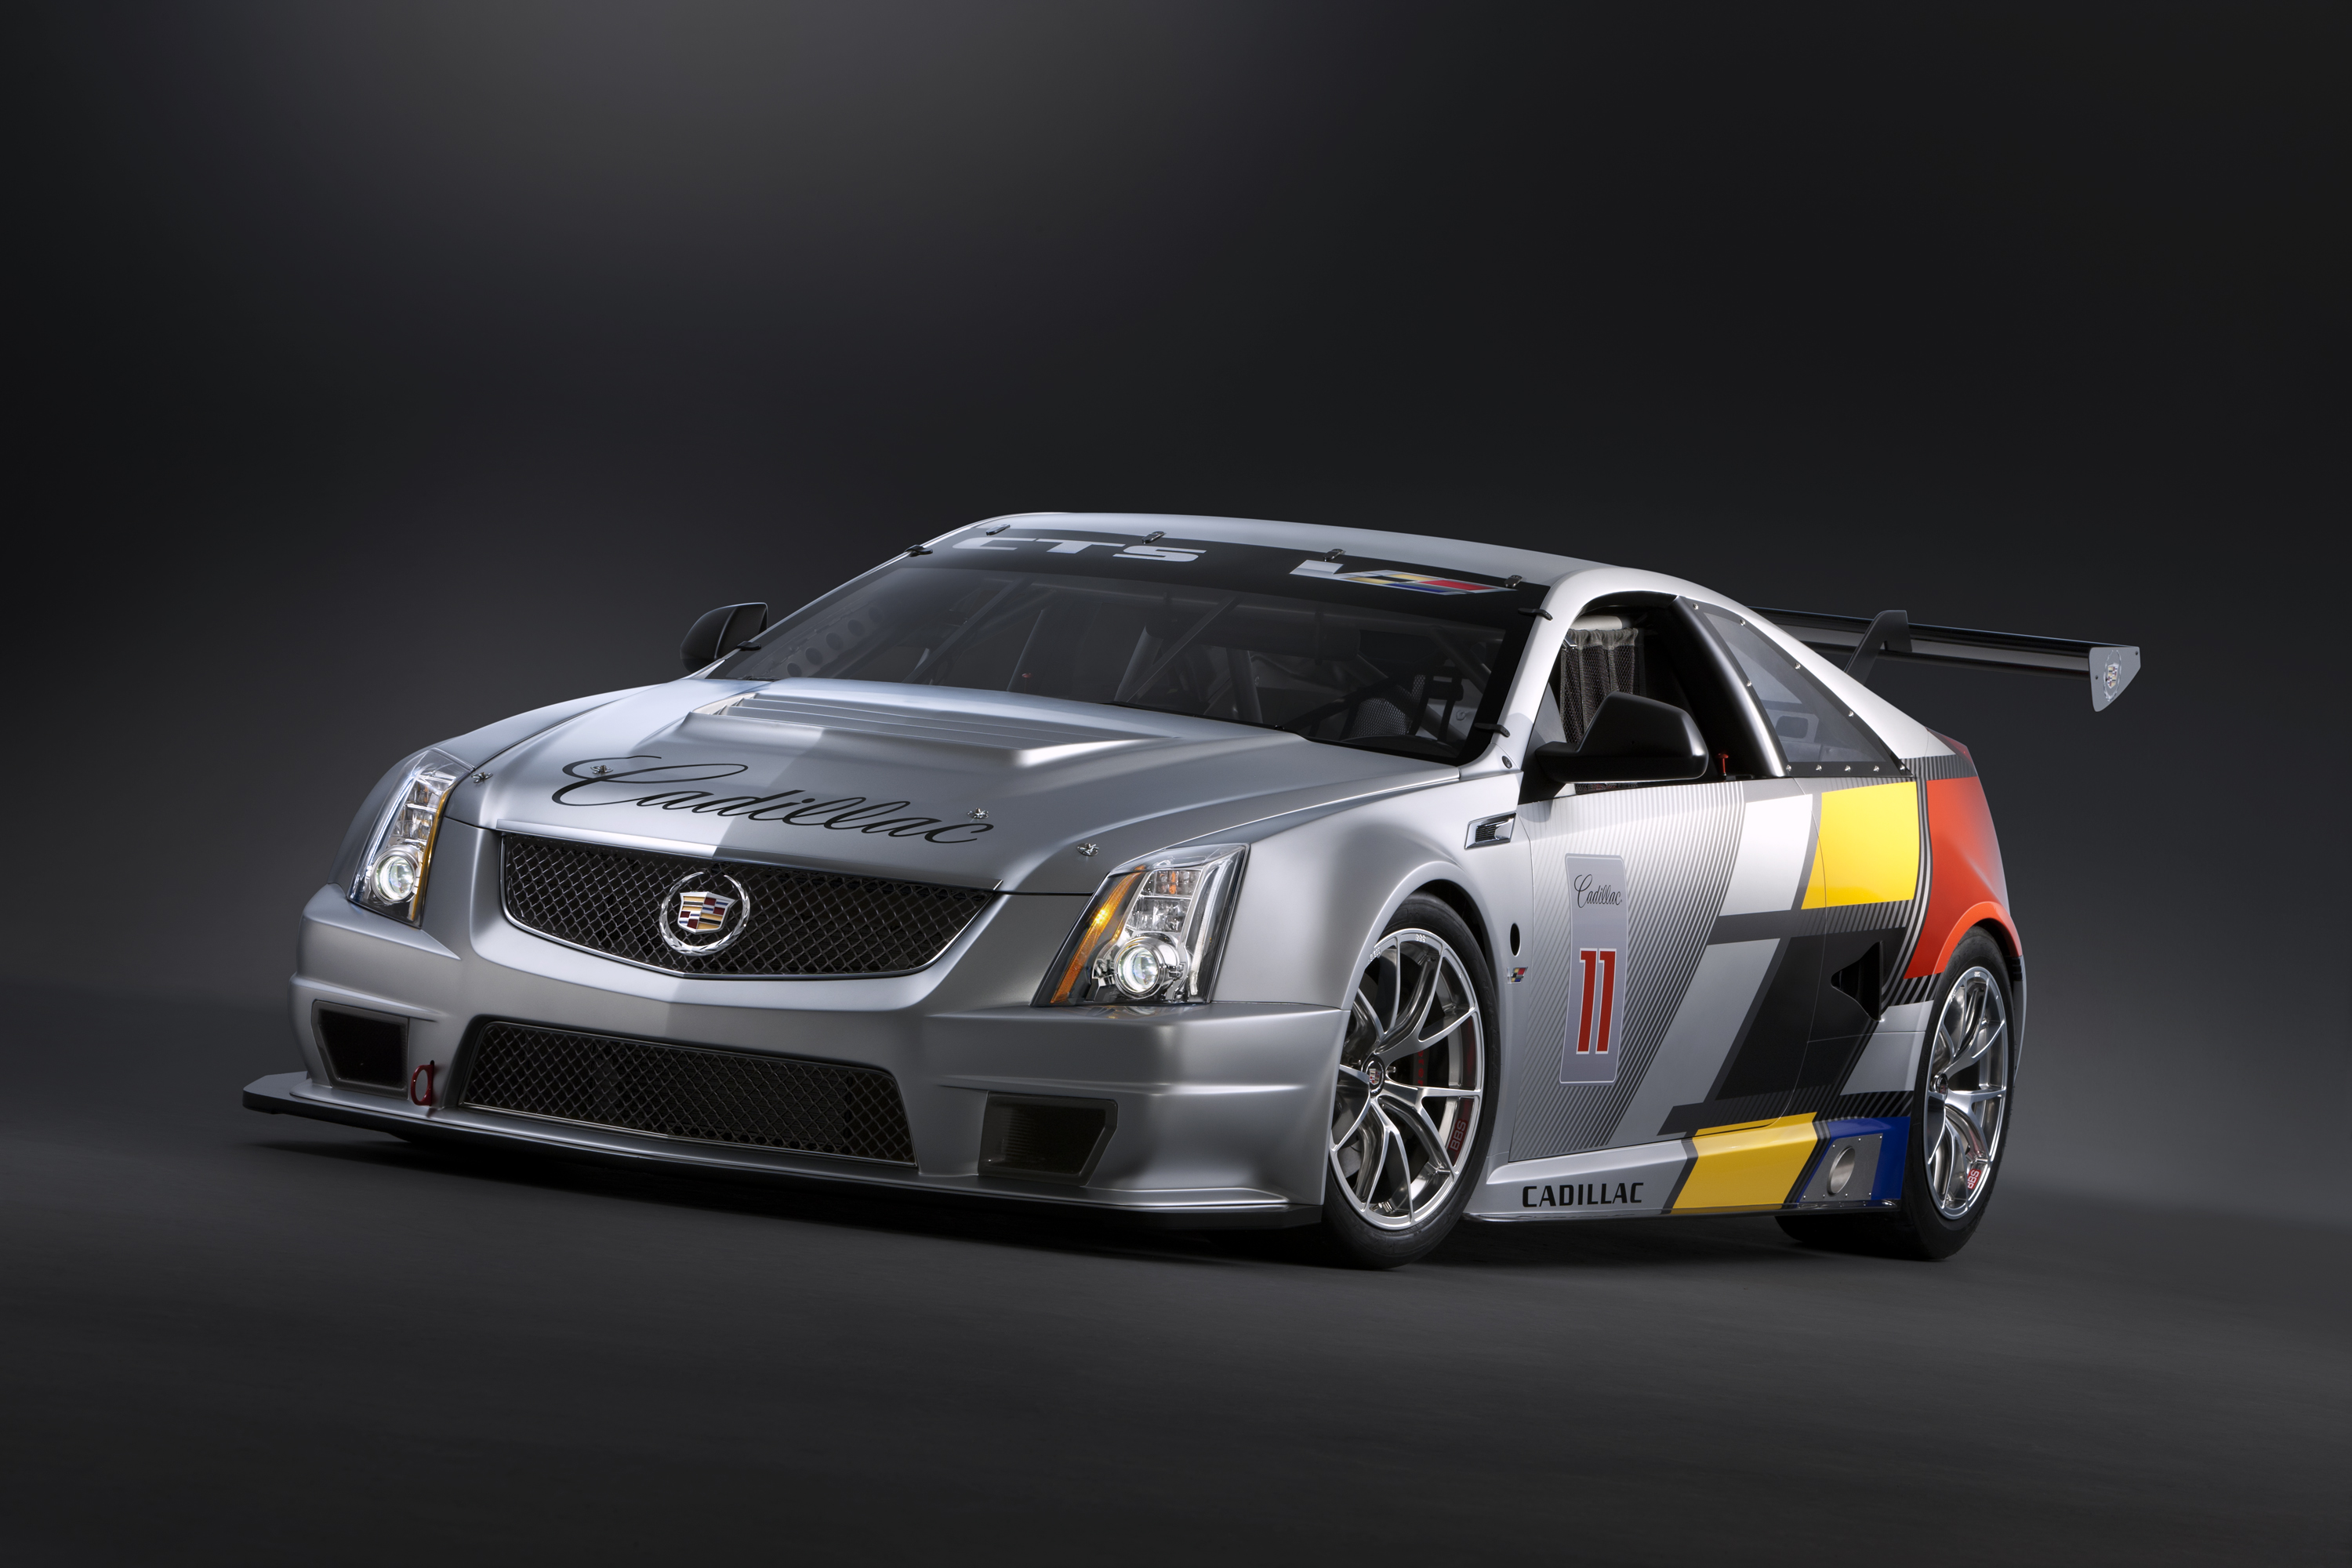 2011 cadillac cts v coupe race car review gallery 388370 top speed. Black Bedroom Furniture Sets. Home Design Ideas